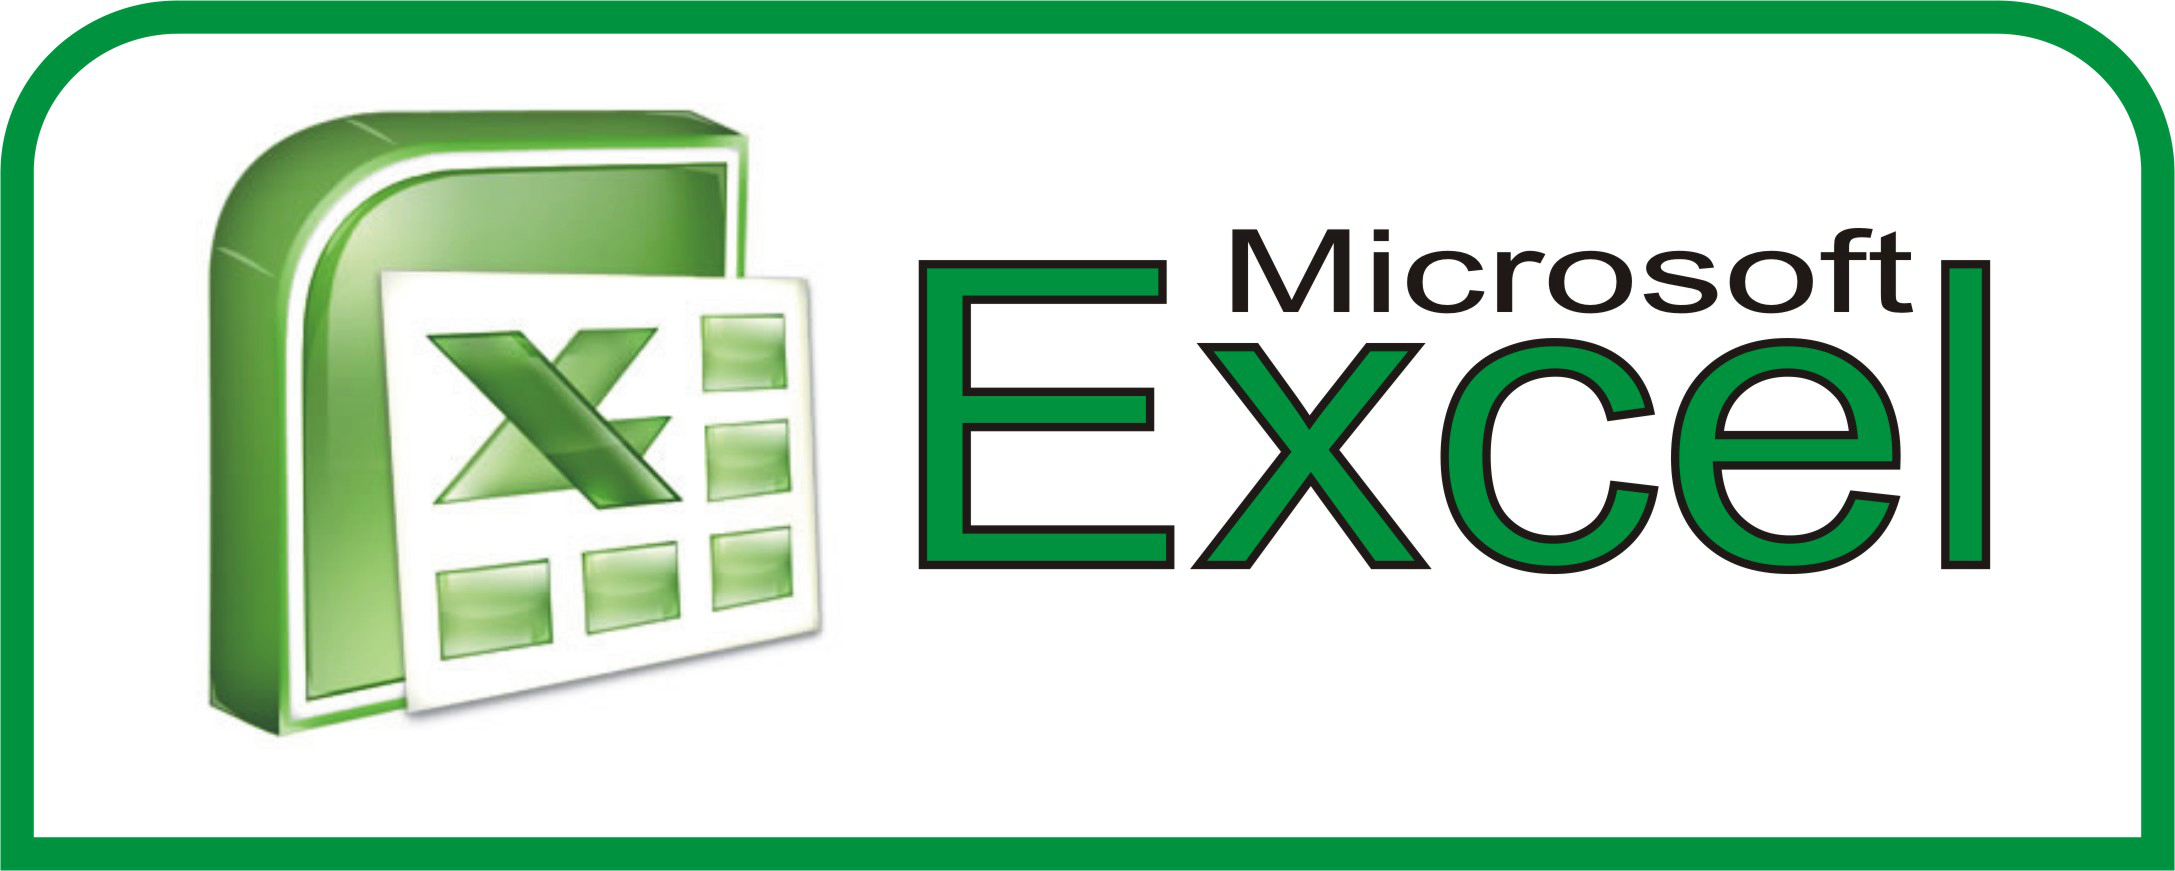 Ediblewildsus  Personable  Excel Shortcuts You Probably Didnt Know About  Techdissected With Licious Budgeting On Excel Besides Ms Excel Keyboard Shortcuts Furthermore Excel For Function With Extraordinary Hud  Form Excel Also Random Data Generator Excel In Addition How To Draw Chart In Excel And How To Compare Two Columns Of Data In Excel As Well As Excel Survey Results Template Additionally Combination Chart Excel  From Techdissectedcom With Ediblewildsus  Licious  Excel Shortcuts You Probably Didnt Know About  Techdissected With Extraordinary Budgeting On Excel Besides Ms Excel Keyboard Shortcuts Furthermore Excel For Function And Personable Hud  Form Excel Also Random Data Generator Excel In Addition How To Draw Chart In Excel From Techdissectedcom